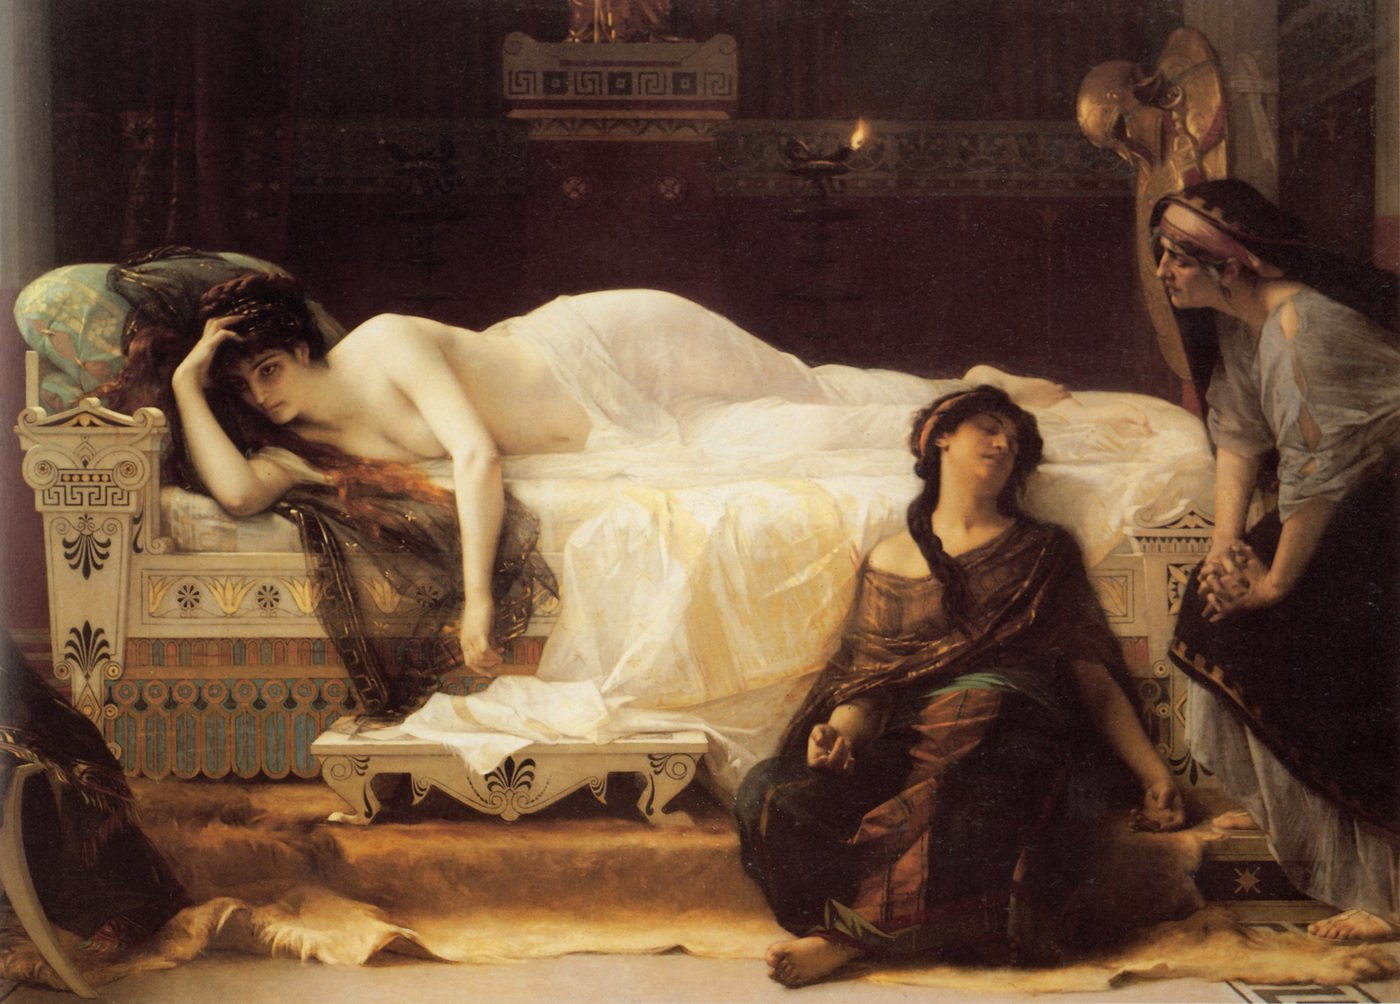 Alexandre Cabanel Painting Reproductions For Sale 1st Art Gallery